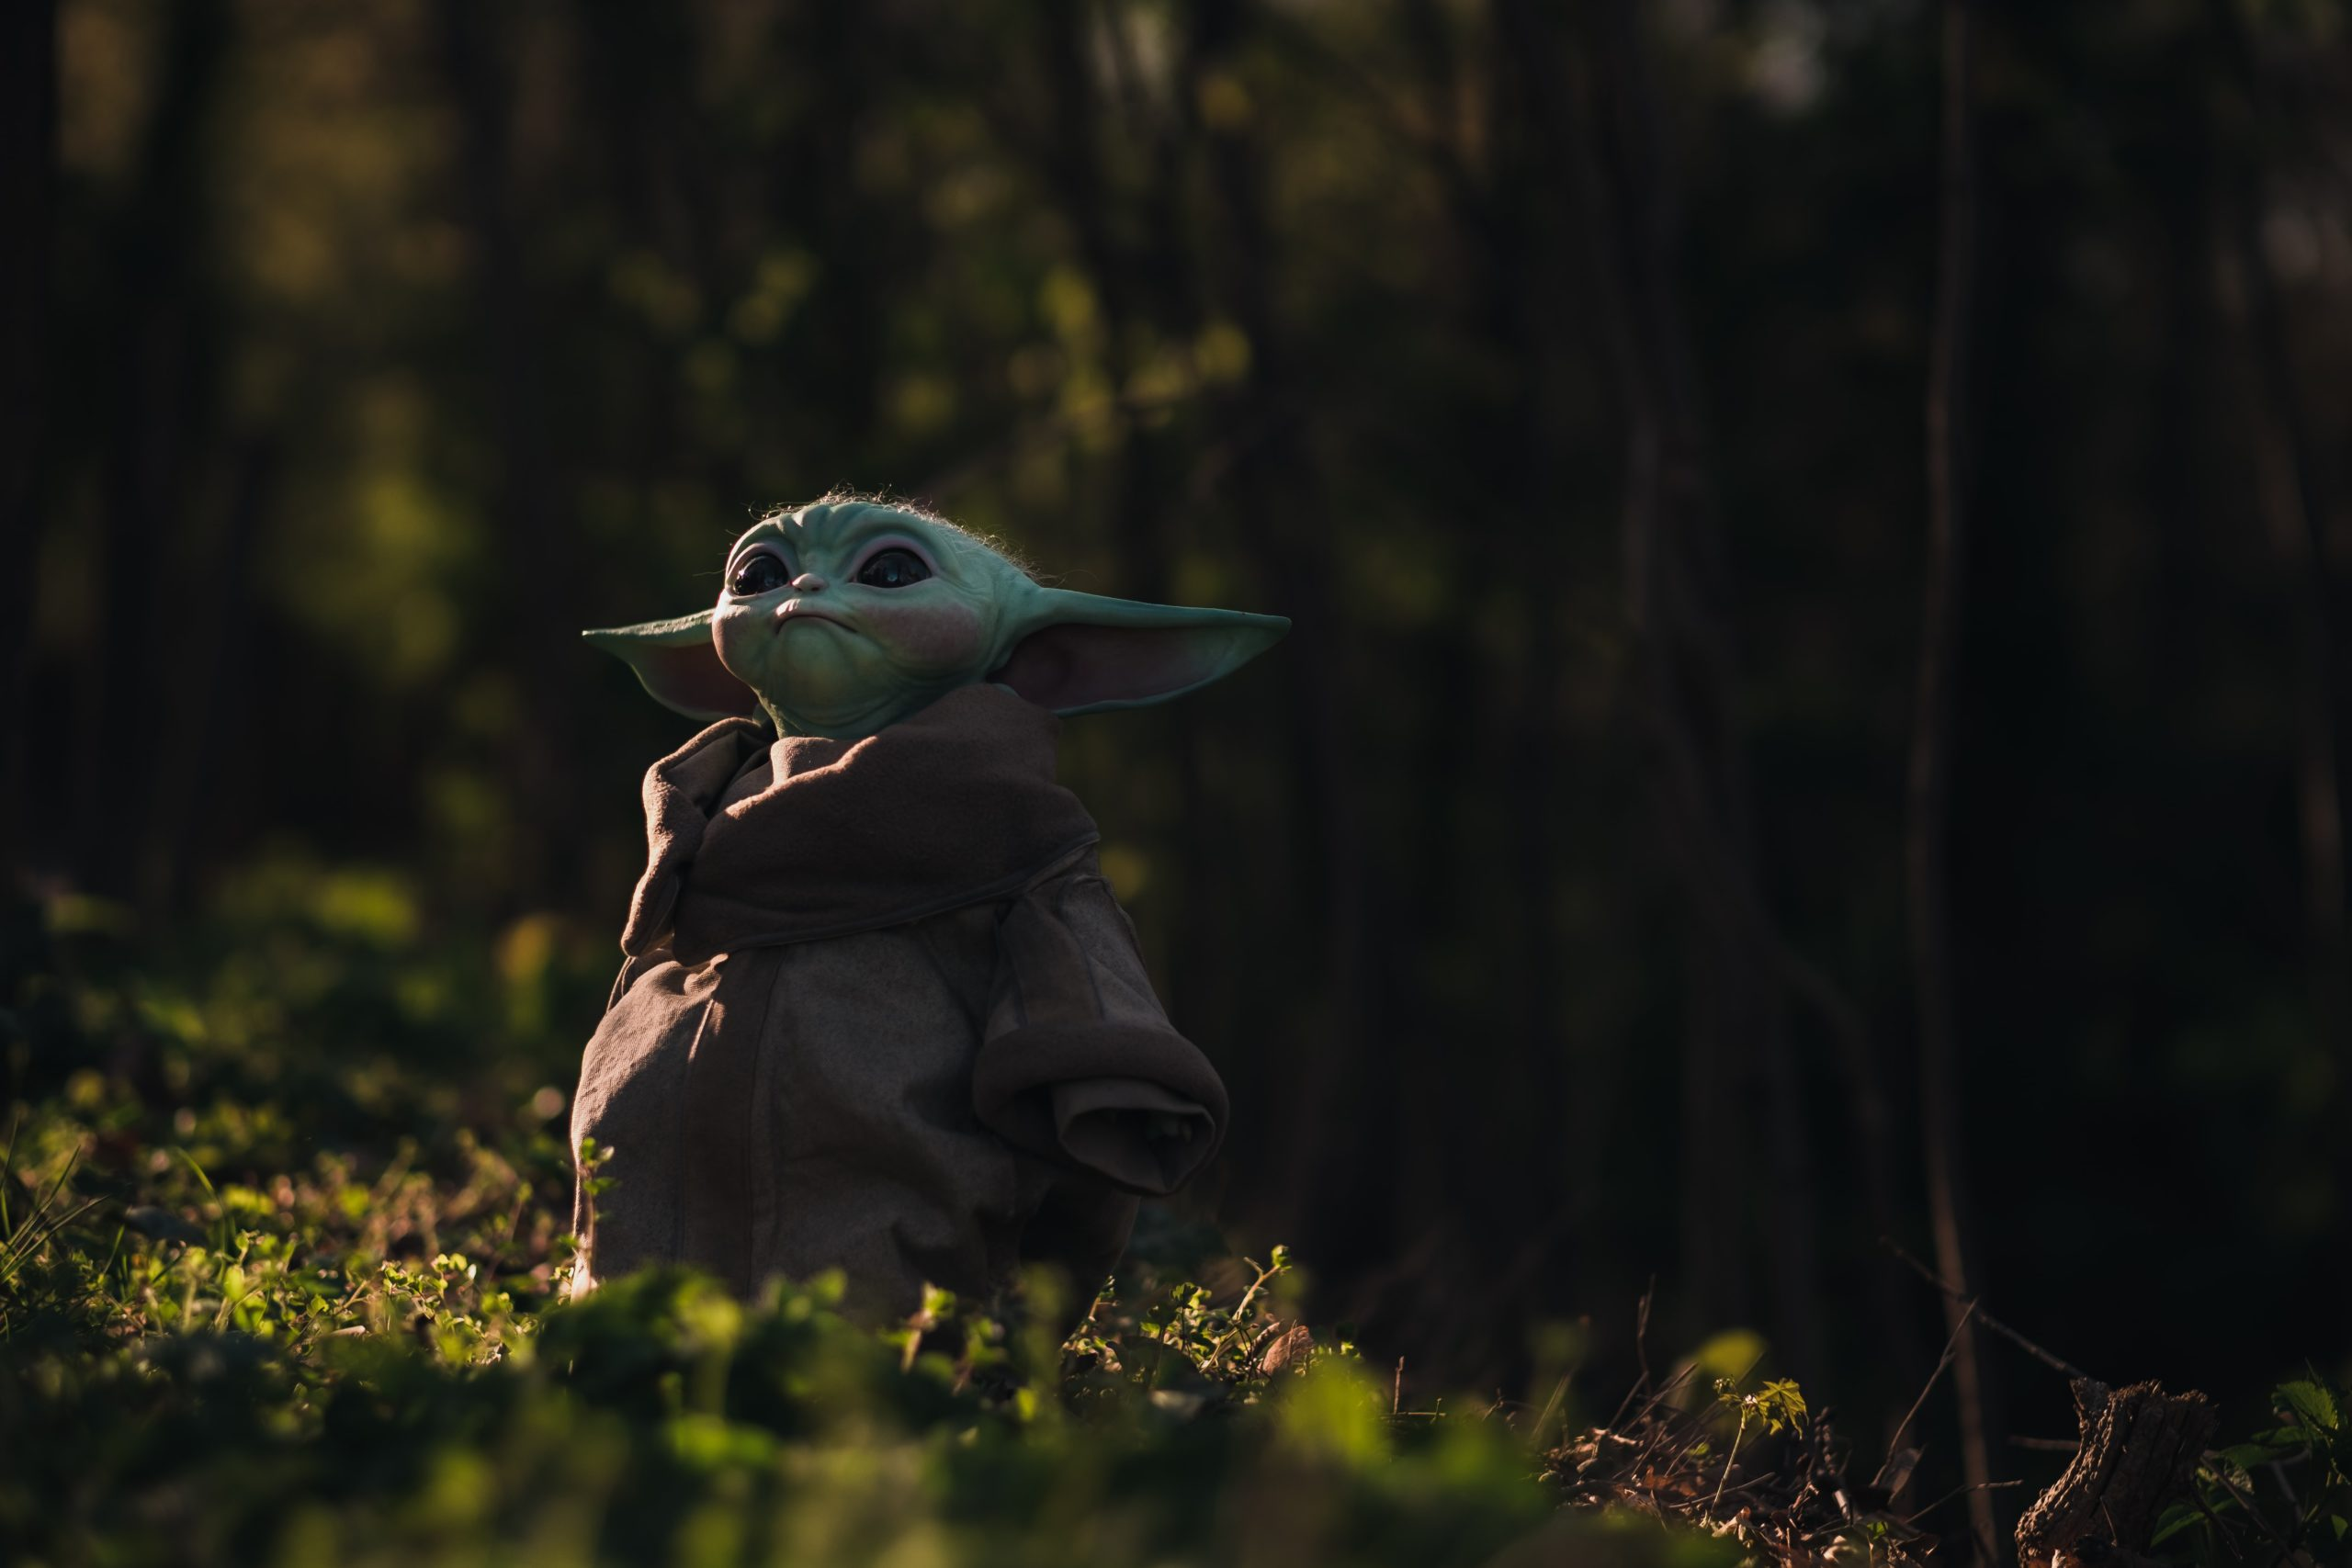 A bird sitting on top of a lush green forest